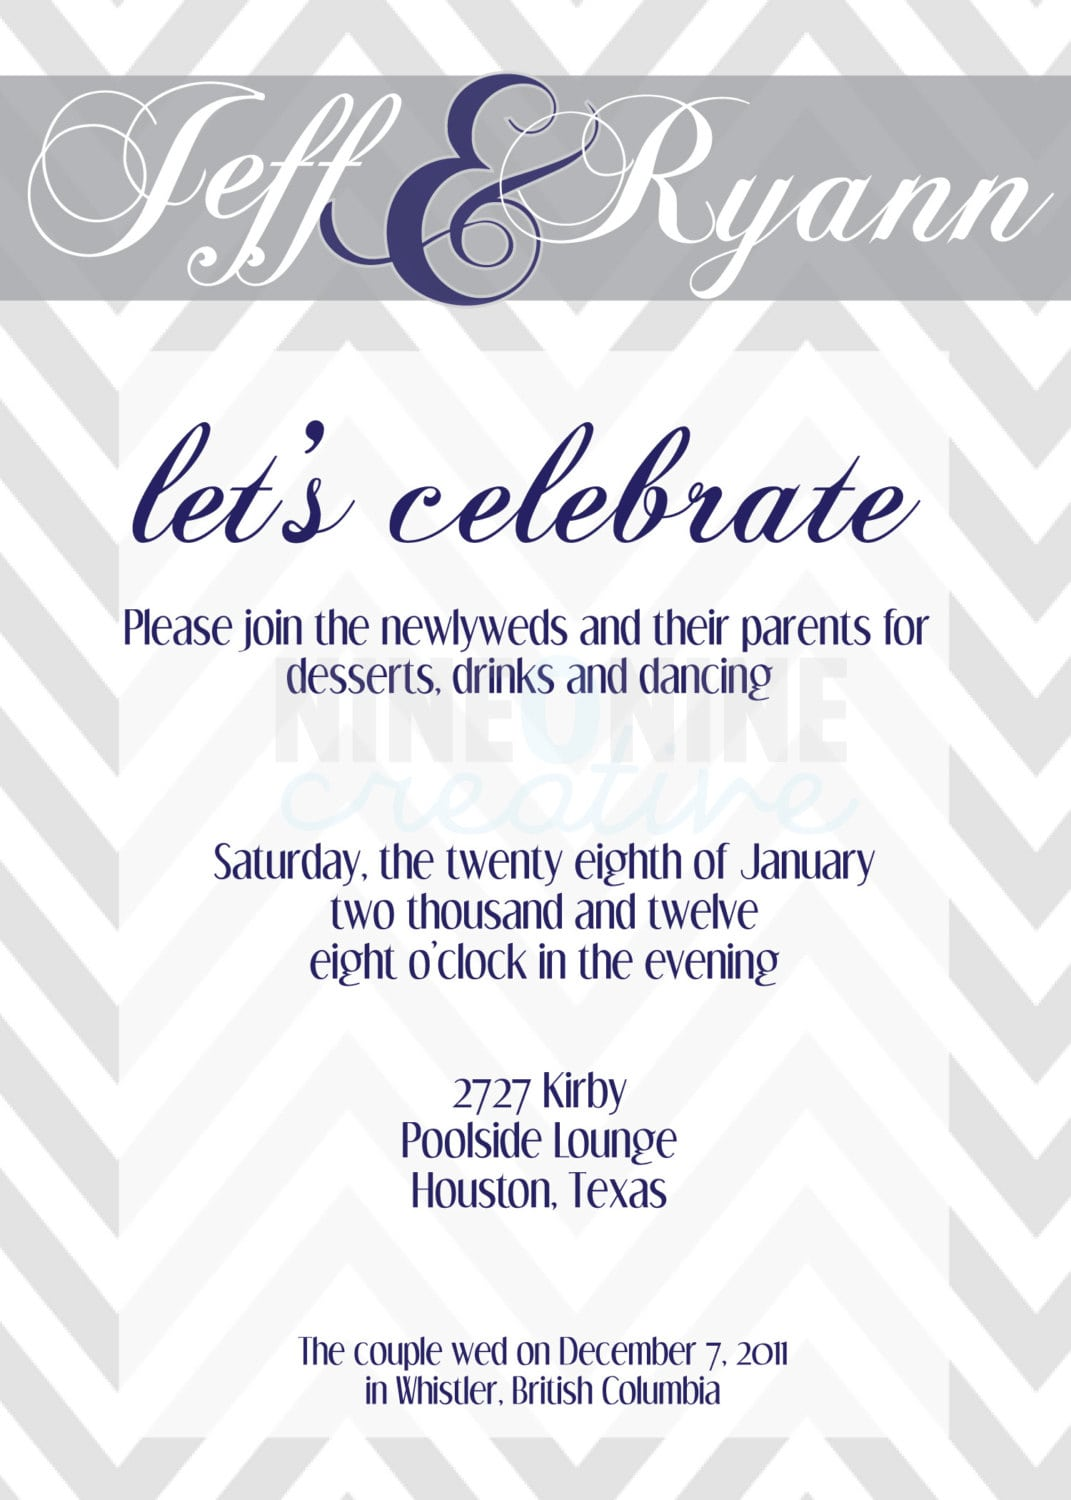 Beautiful Wedding Reception Invitations To Inspire You How To Make